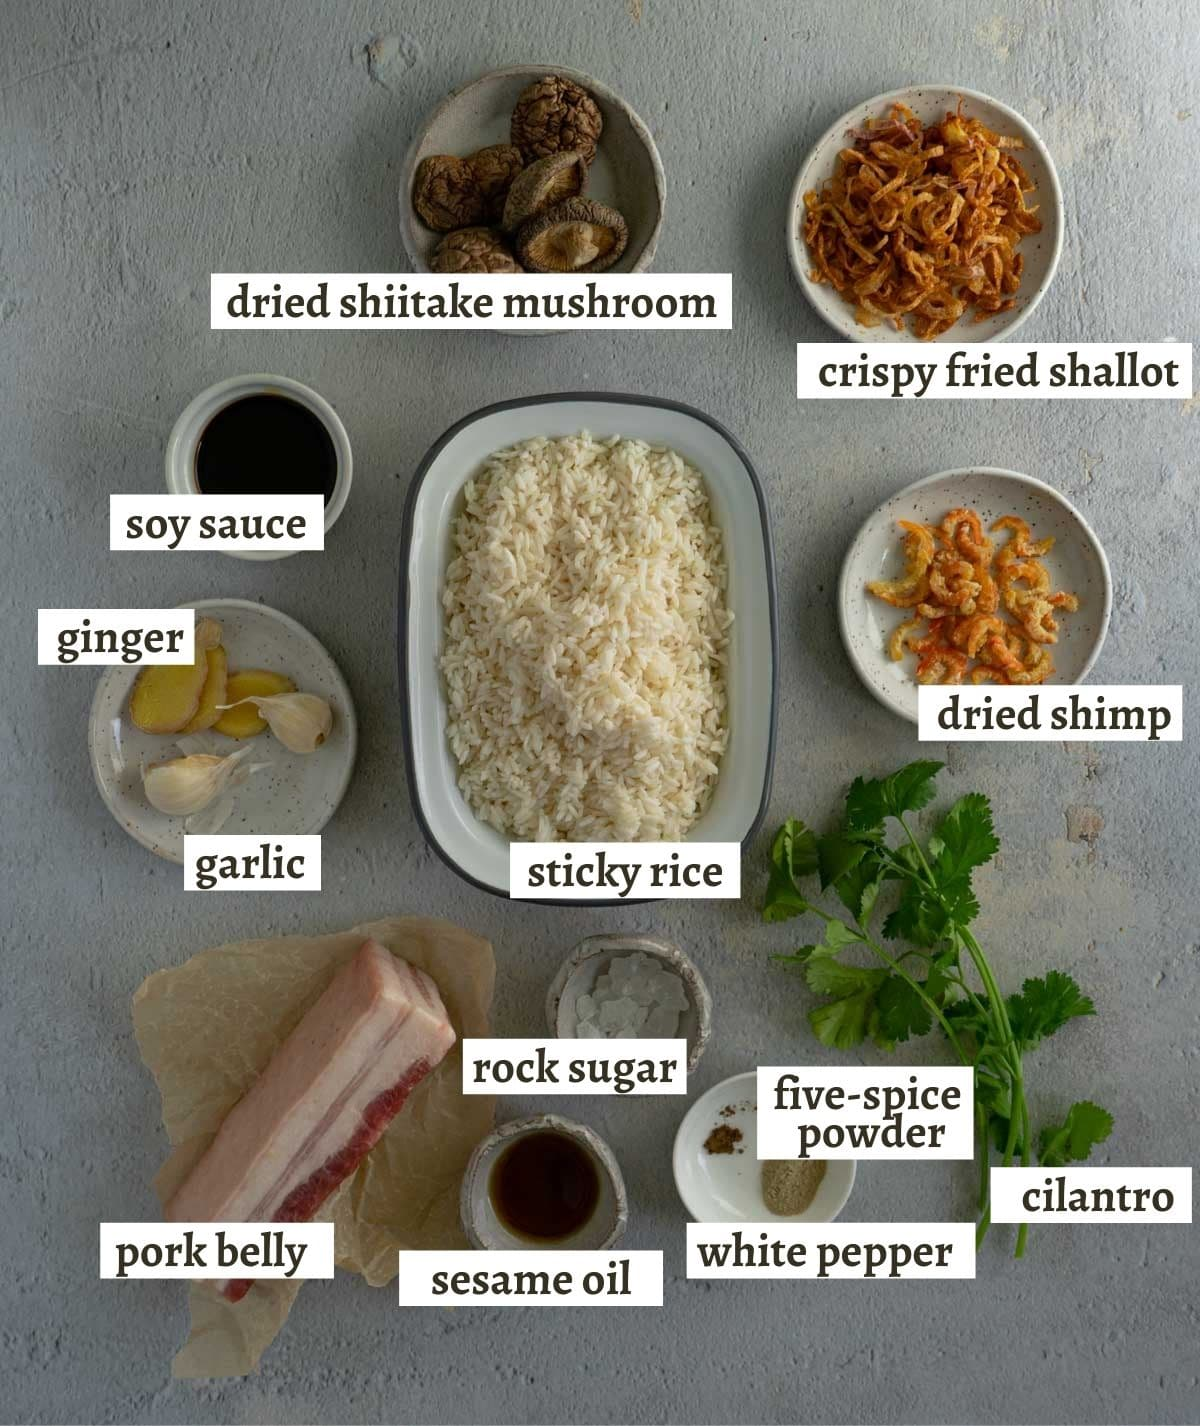 The ingredients for making Taiwanese sticky rice (you fan).